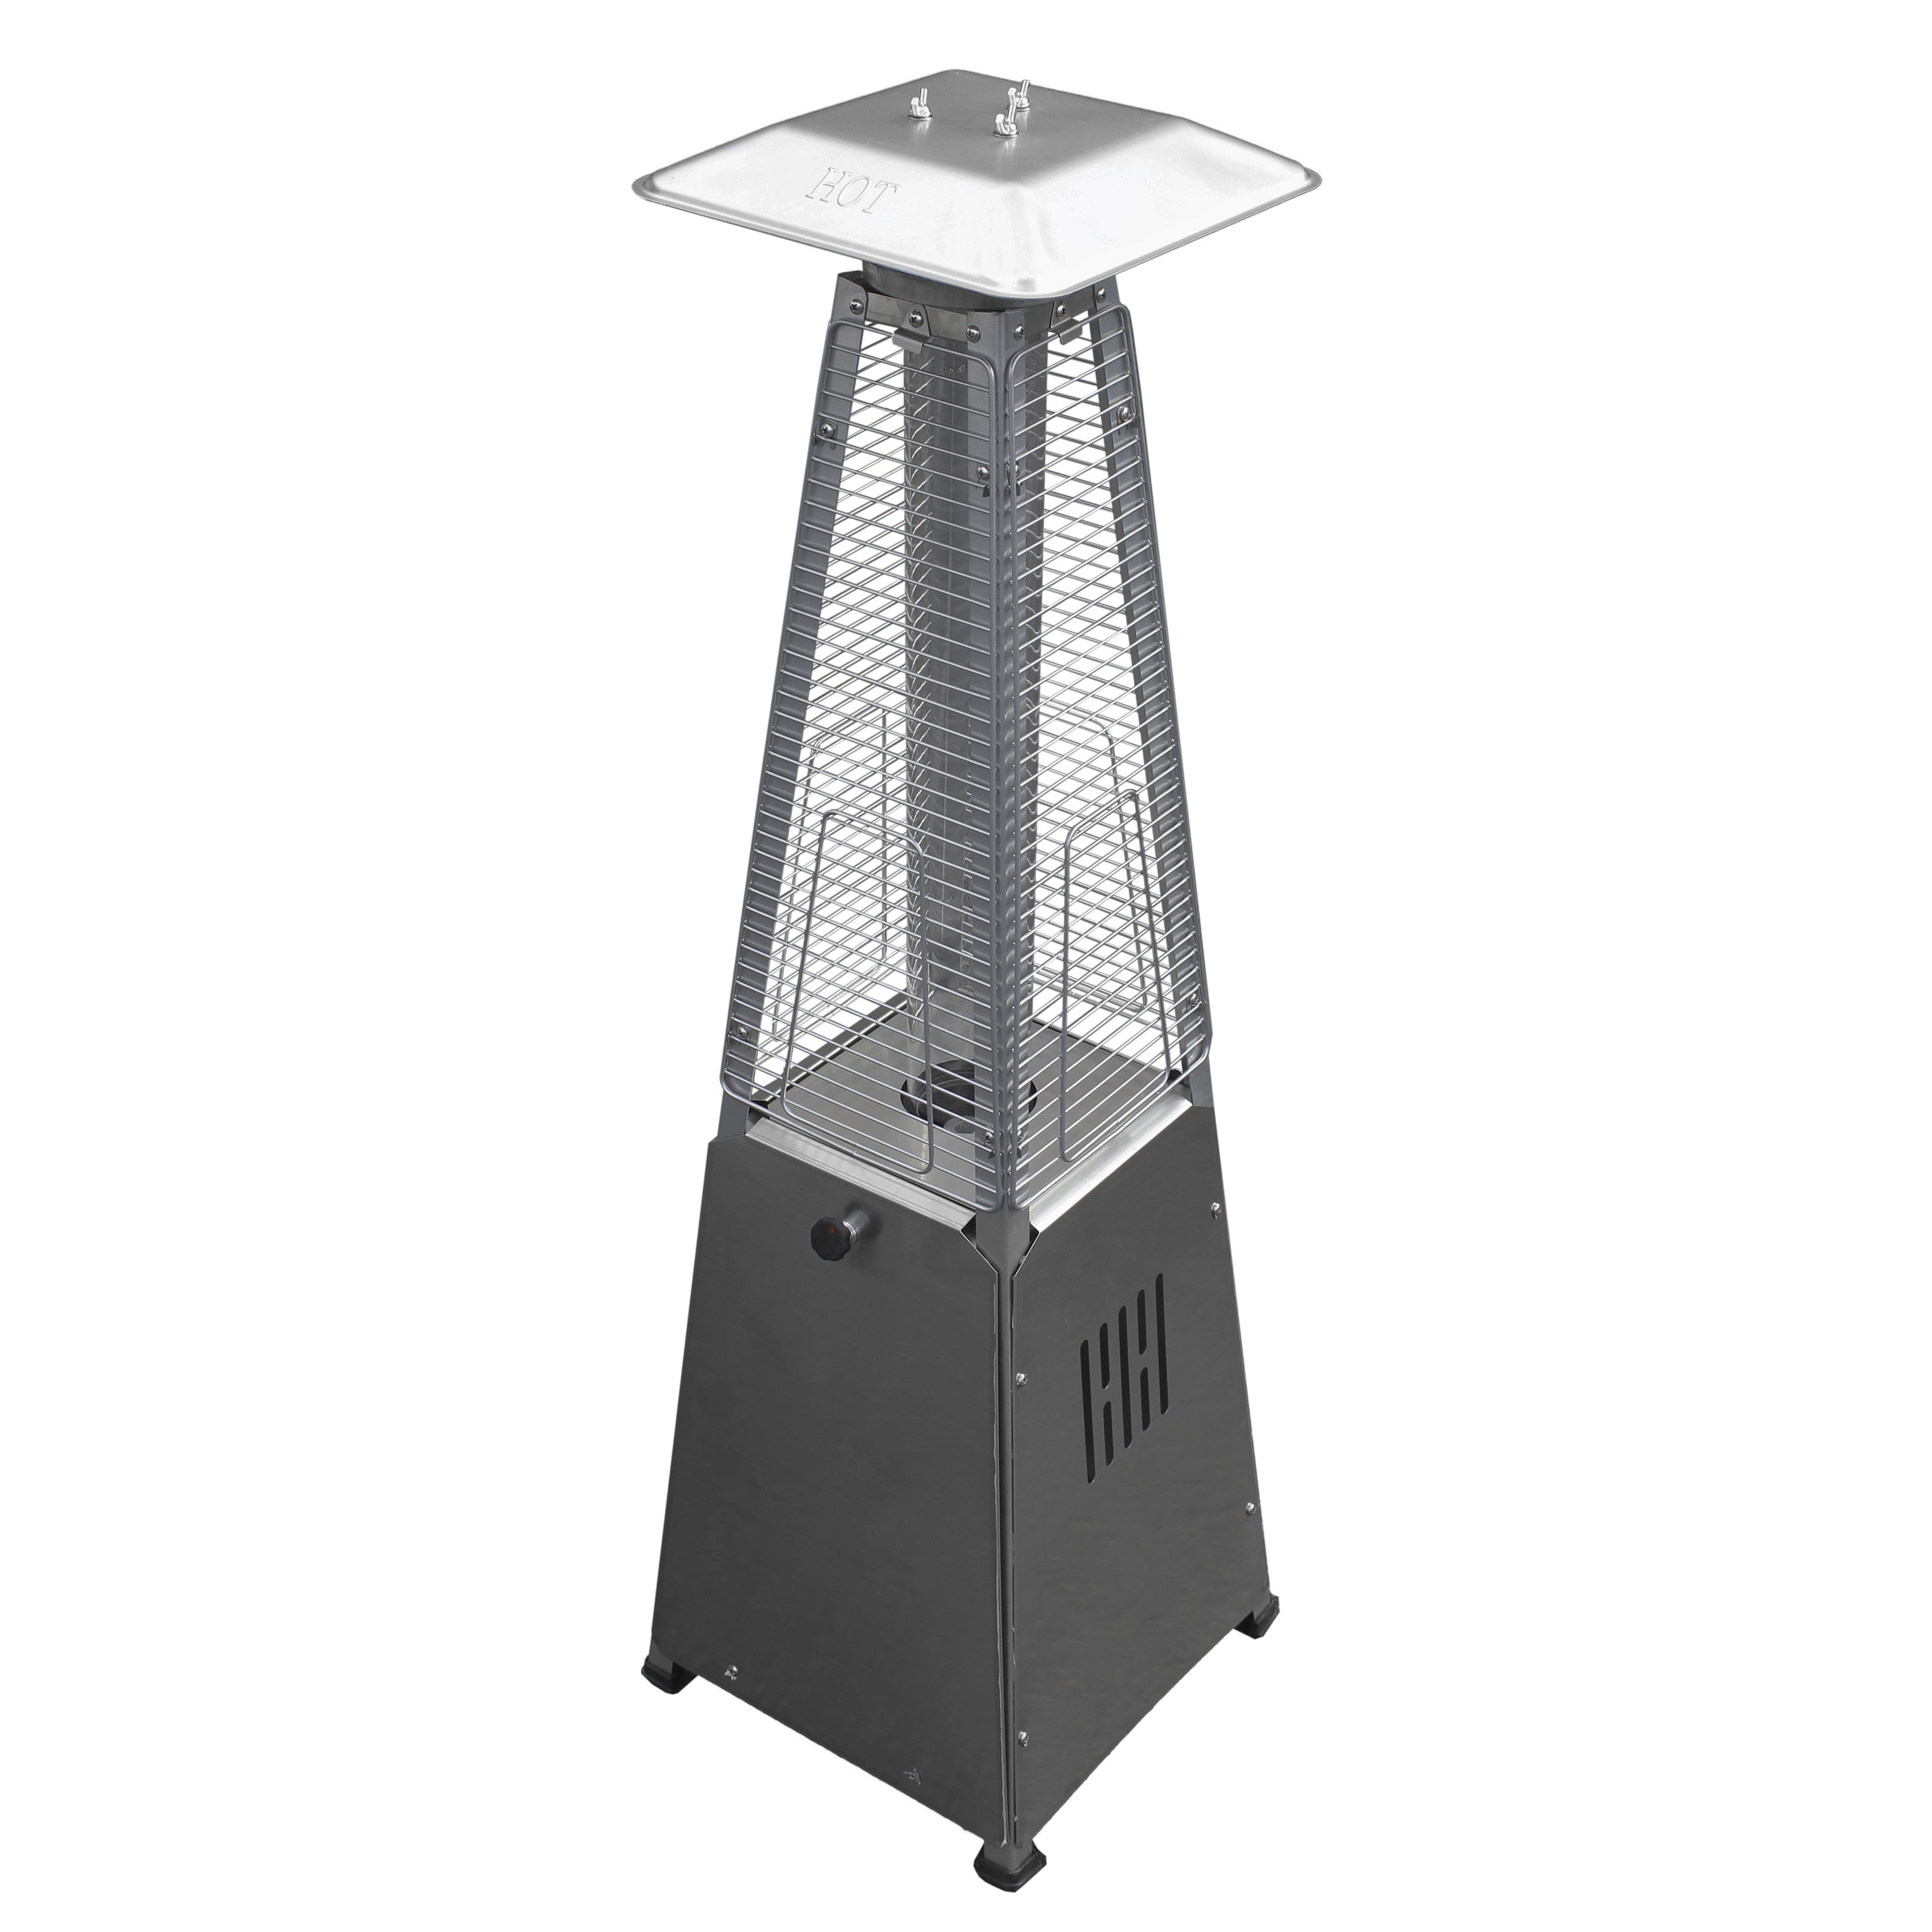 Hiland Glass Tube Table Top Patio Heater in Stainless Ste...